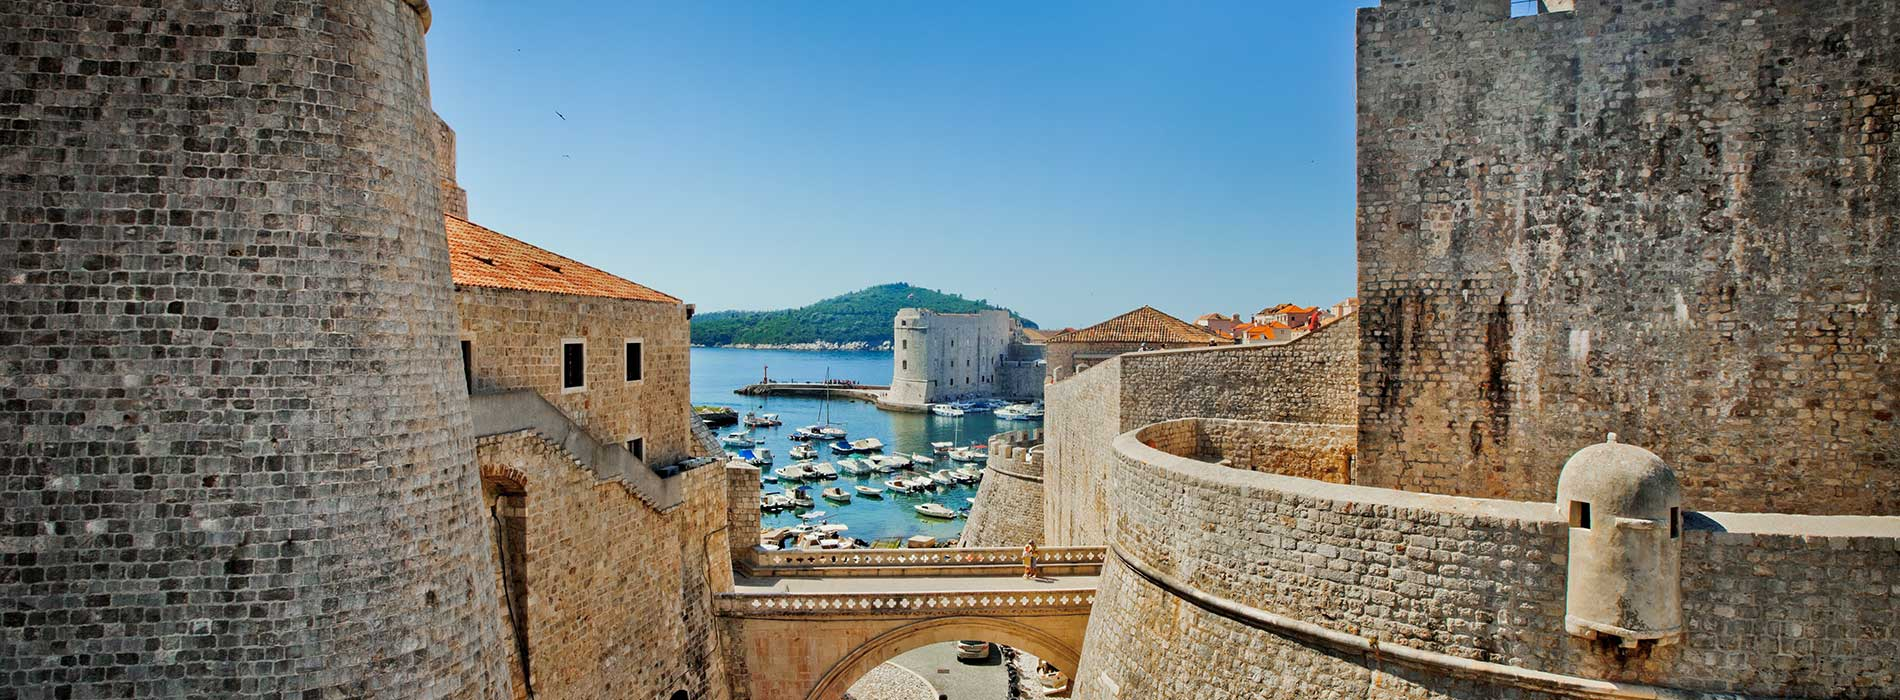 Flight Only - Knock to Dubrovnik